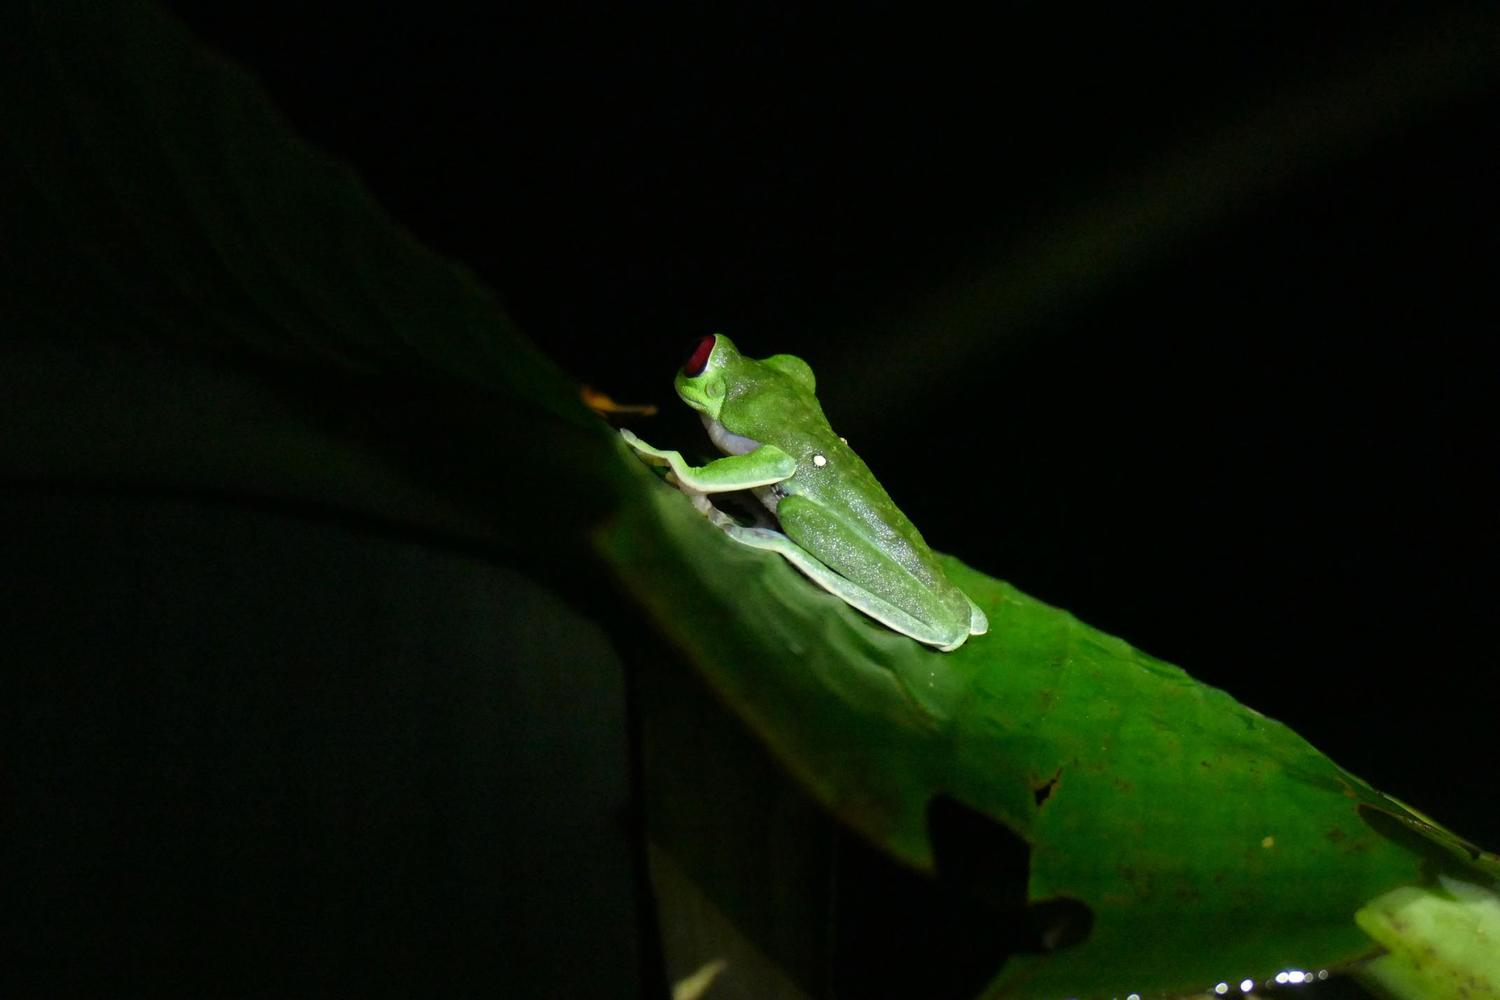 Tree frog spotted on a night walk